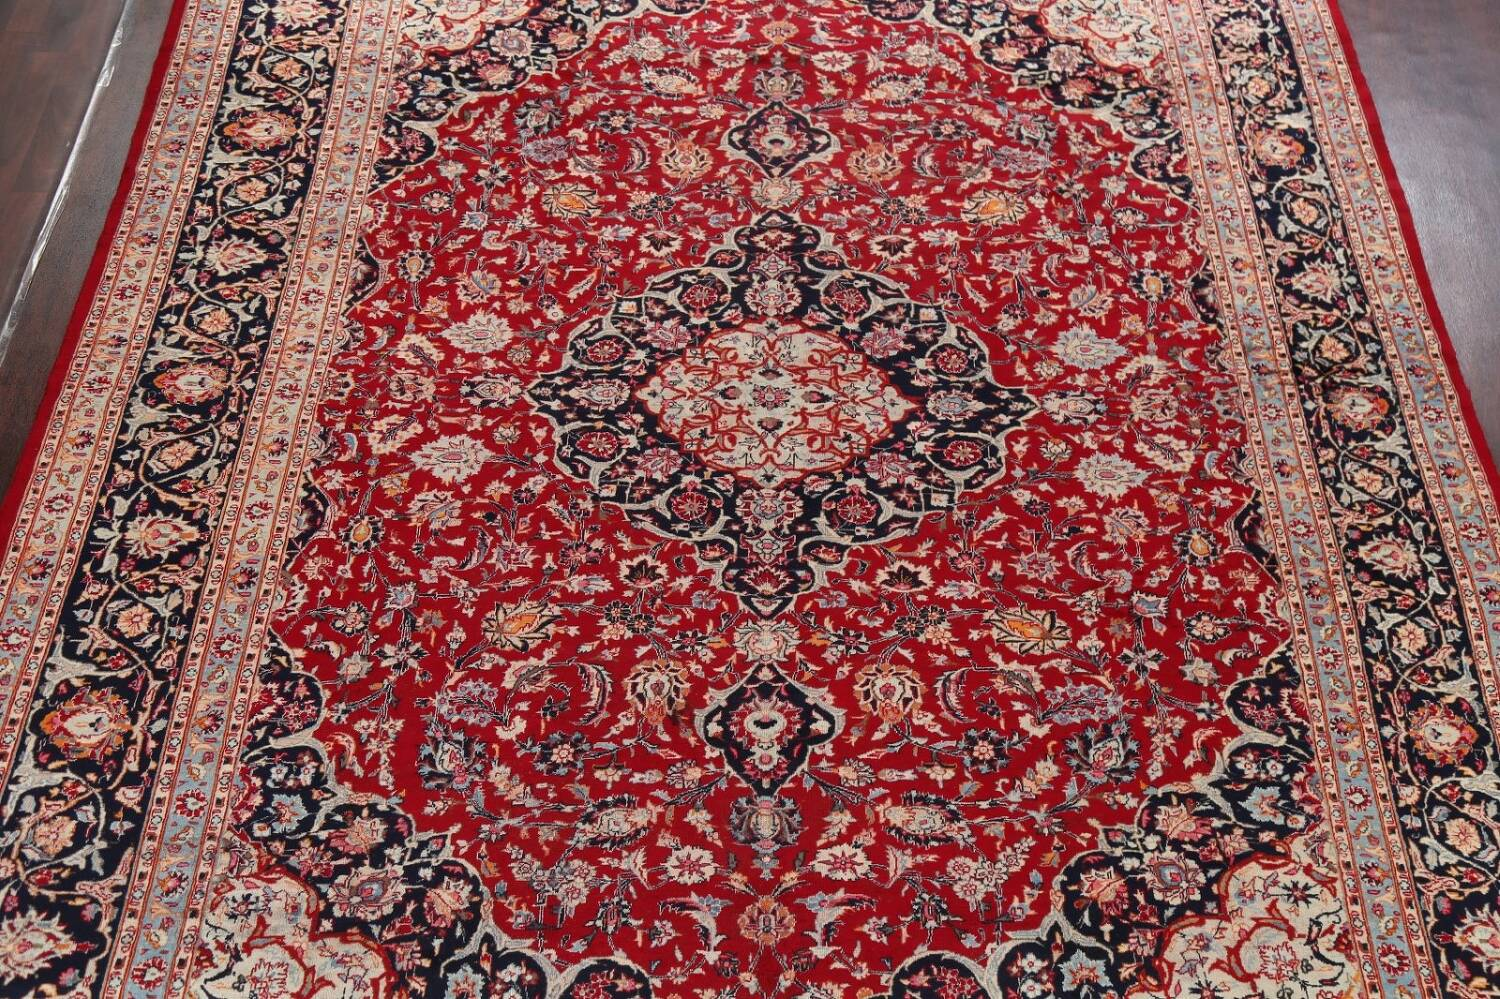 Floral Kashmar Persian Red Area Rug 10x13 image 3